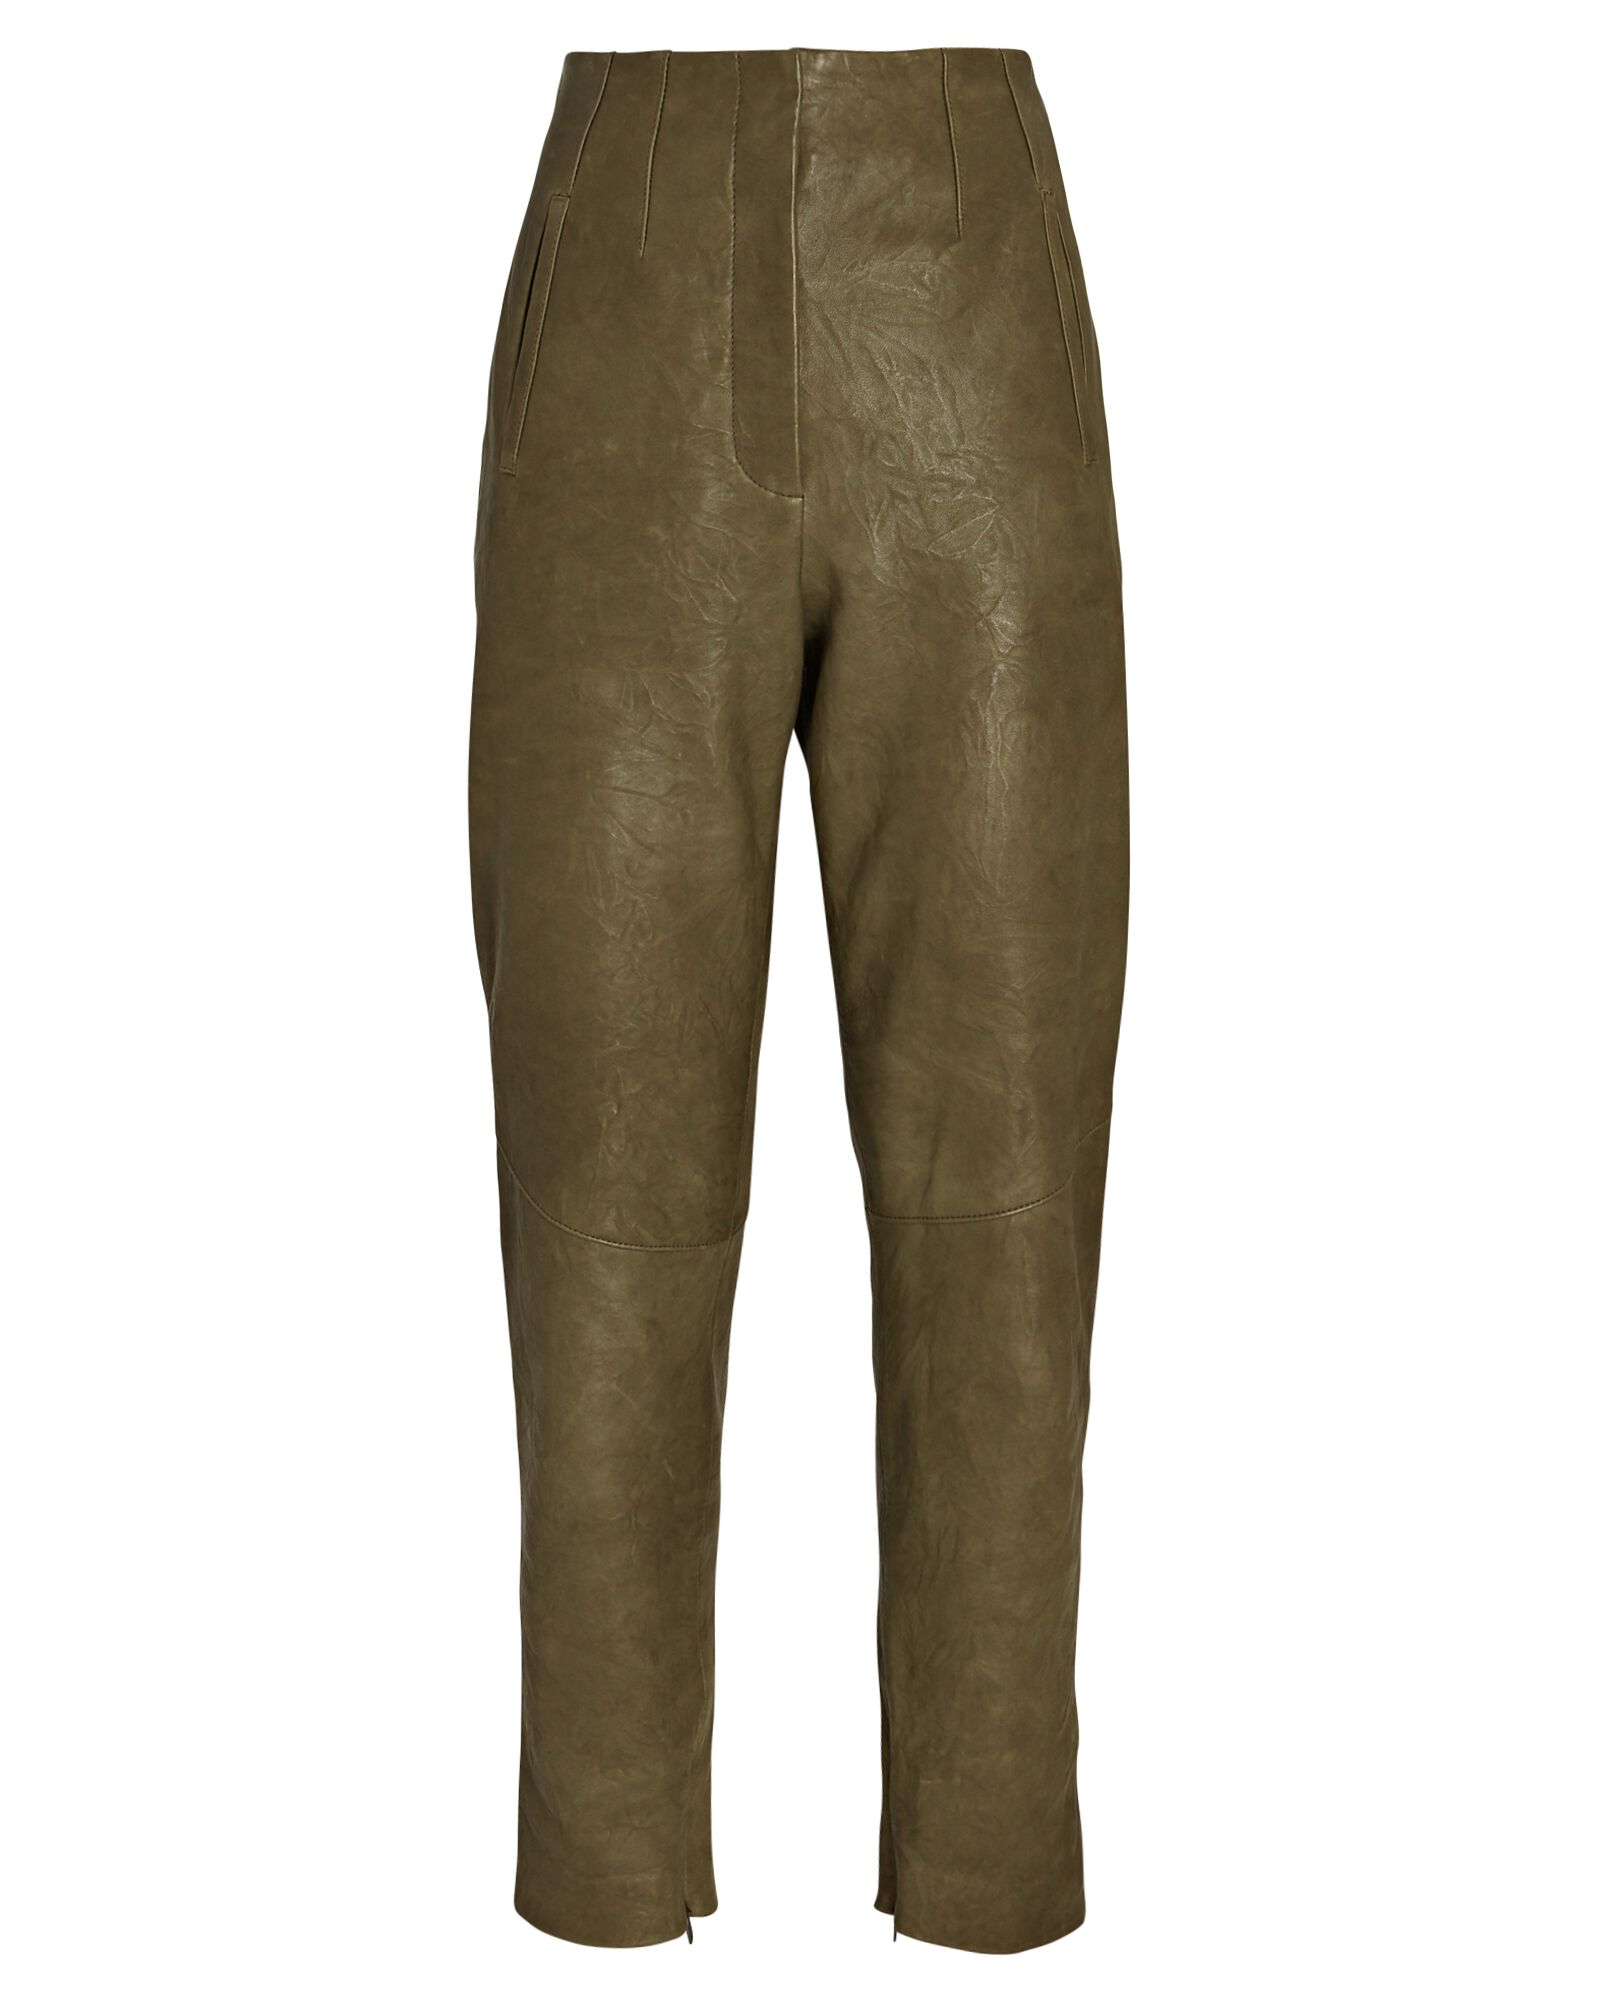 Sethe High-Rise Leather Pants, OLIVE/ARMY, hi-res